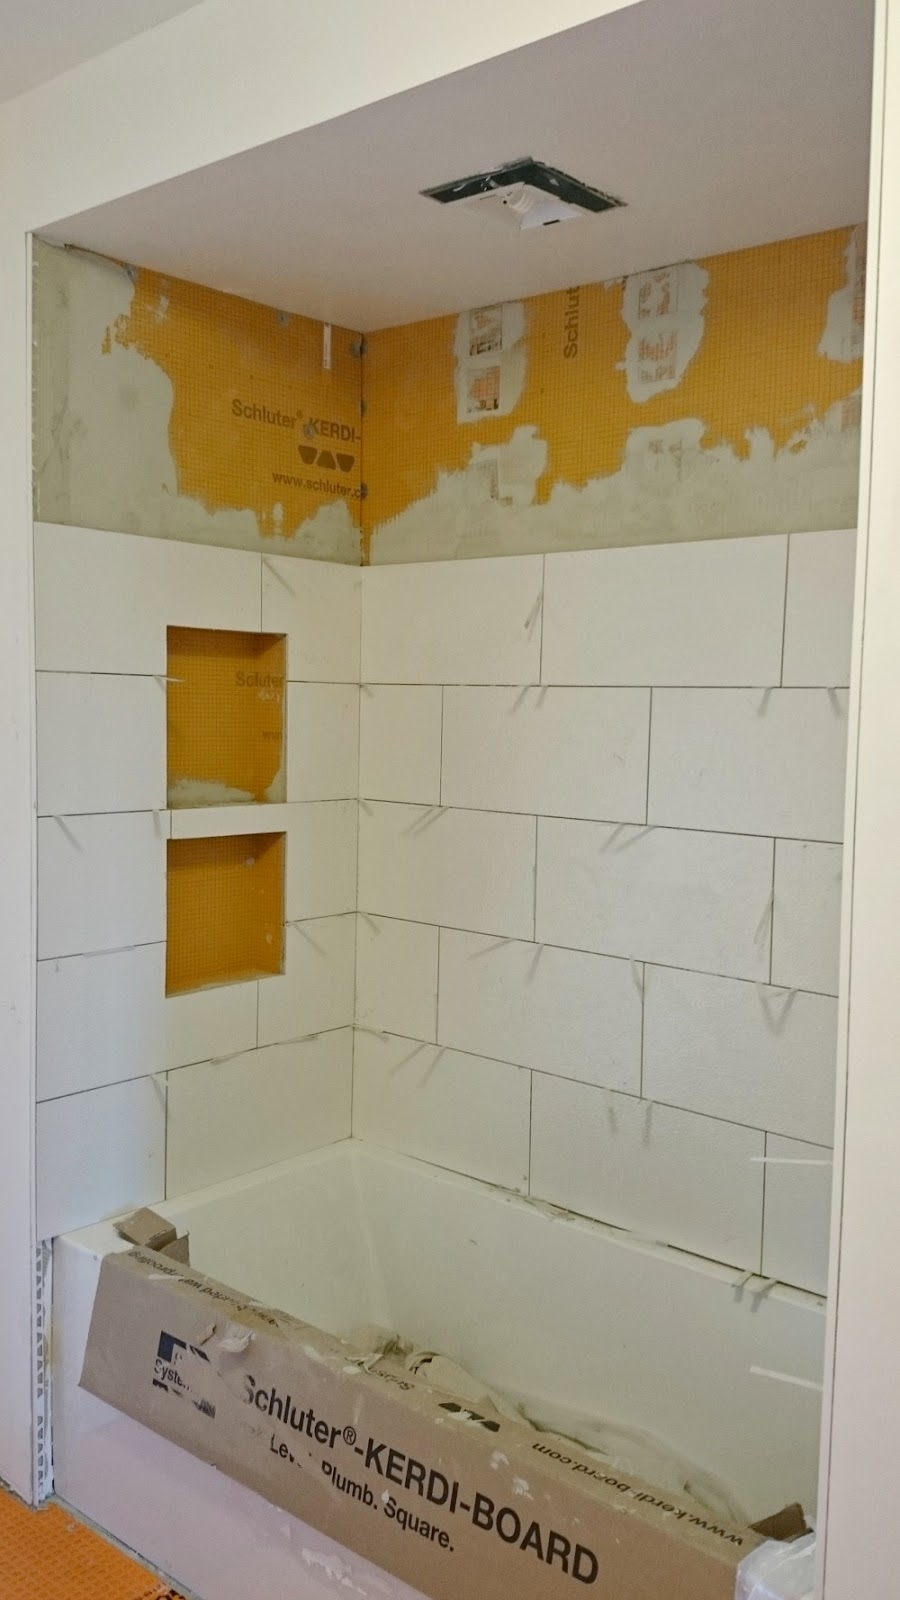 Schluter Kerdi Shower Cubby Installed